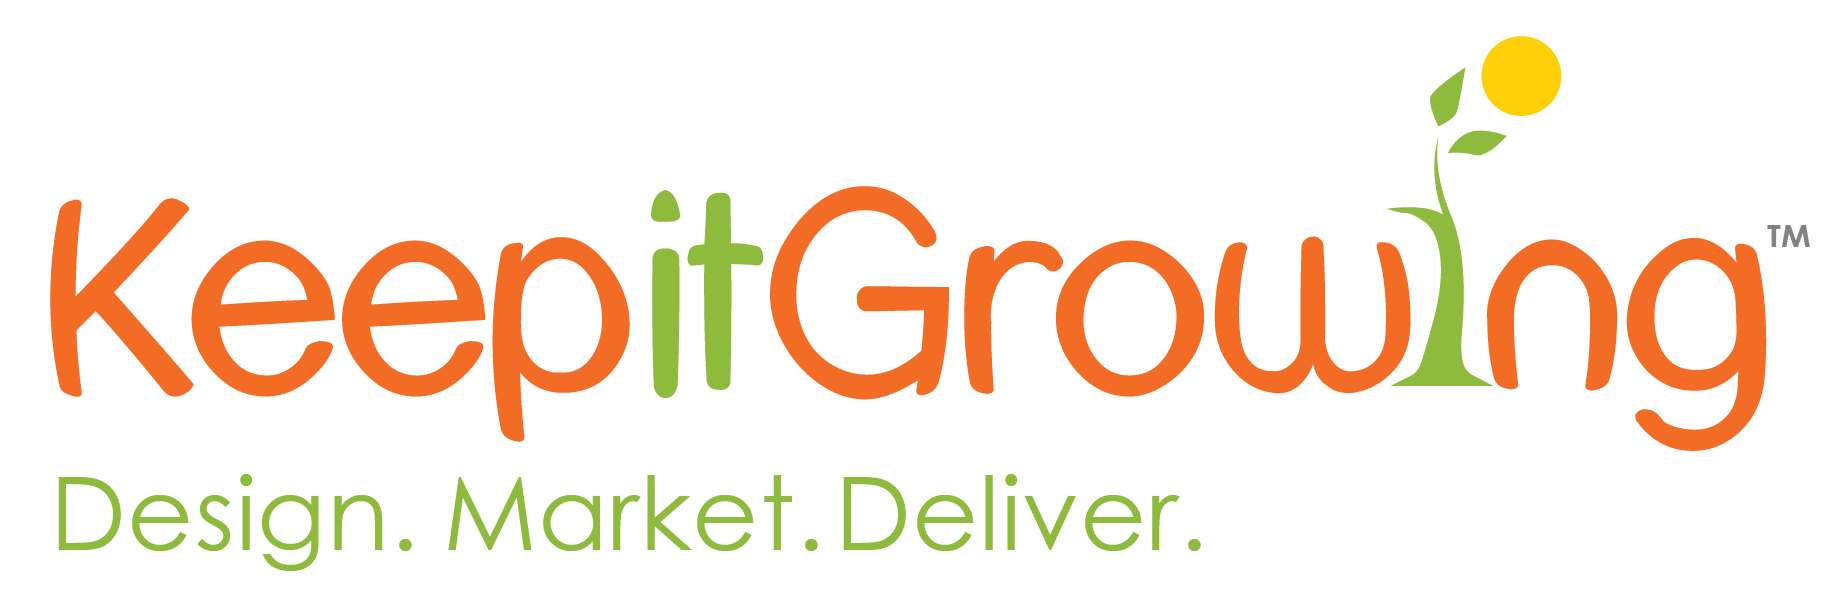 KeepItGrowing Marketing Agency